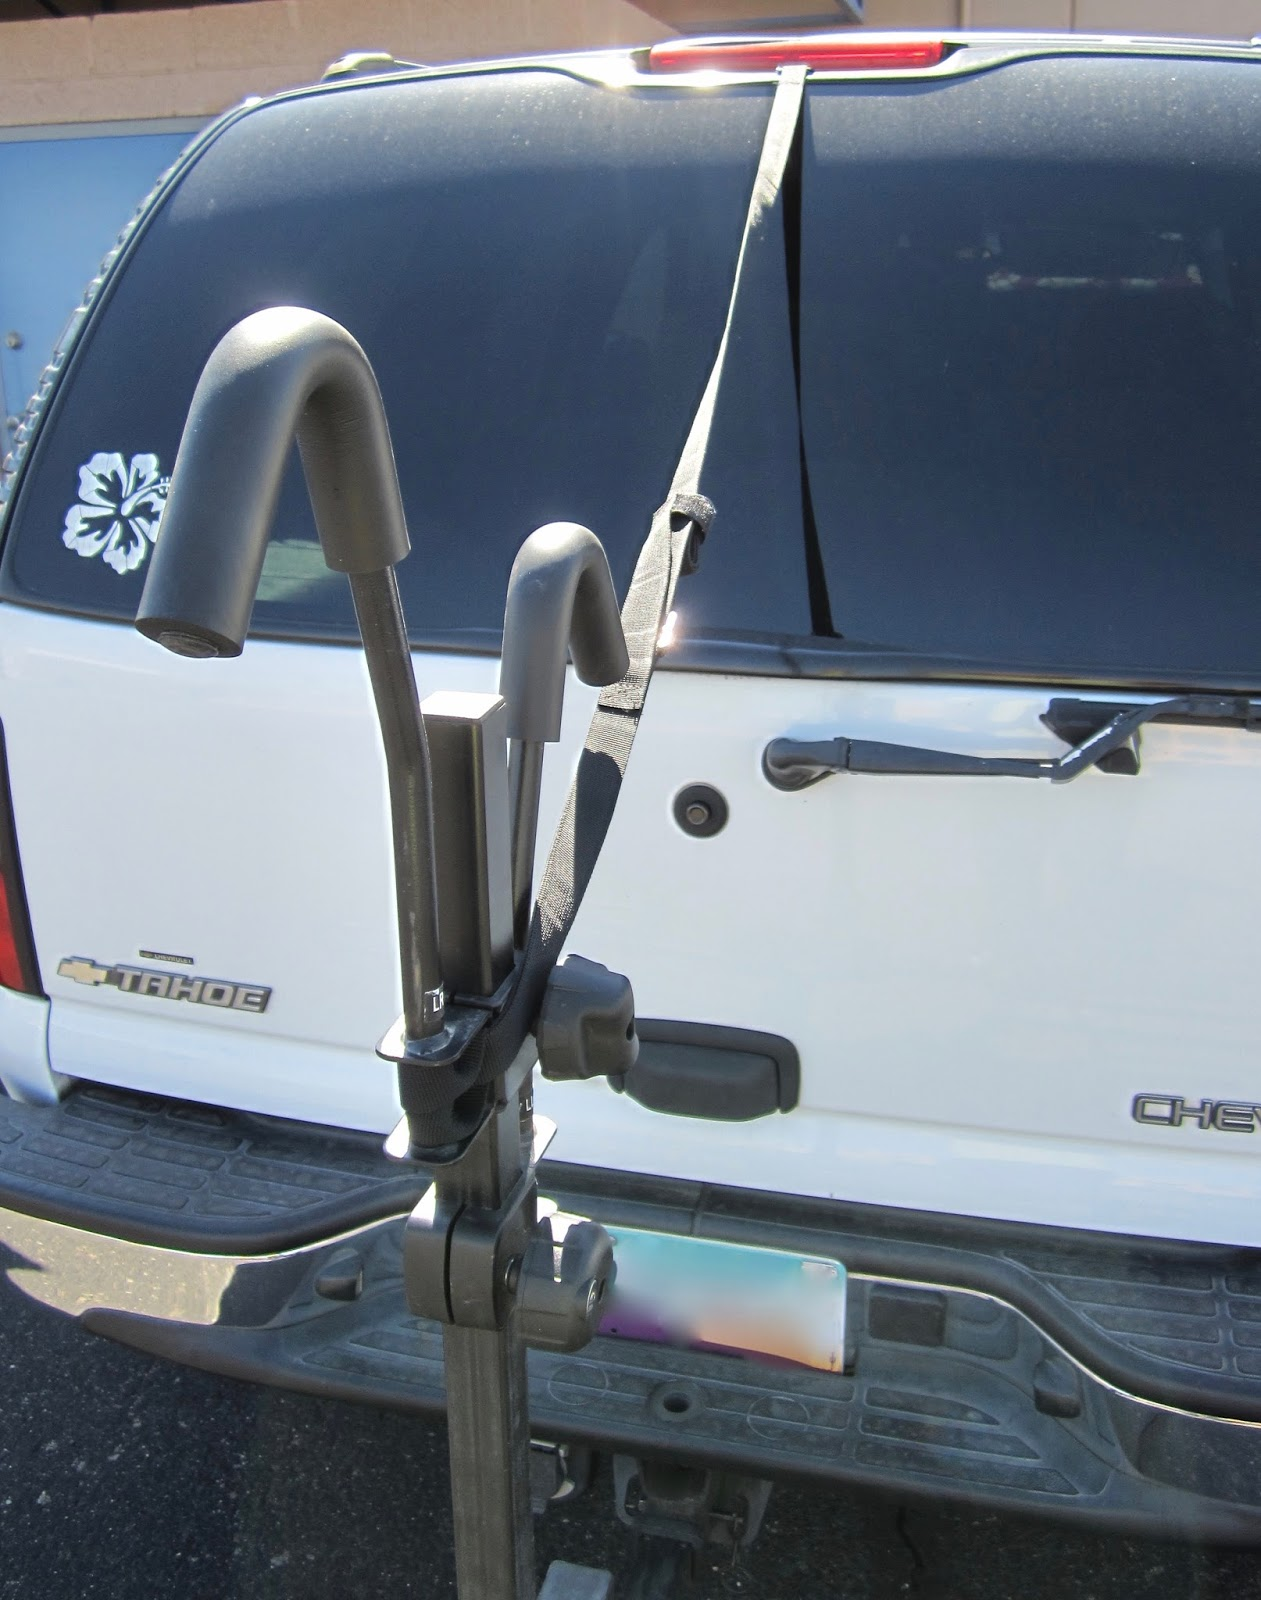 lg com index ev trailer hitch ecohitch electric rack from casteyanqui bike vehicles